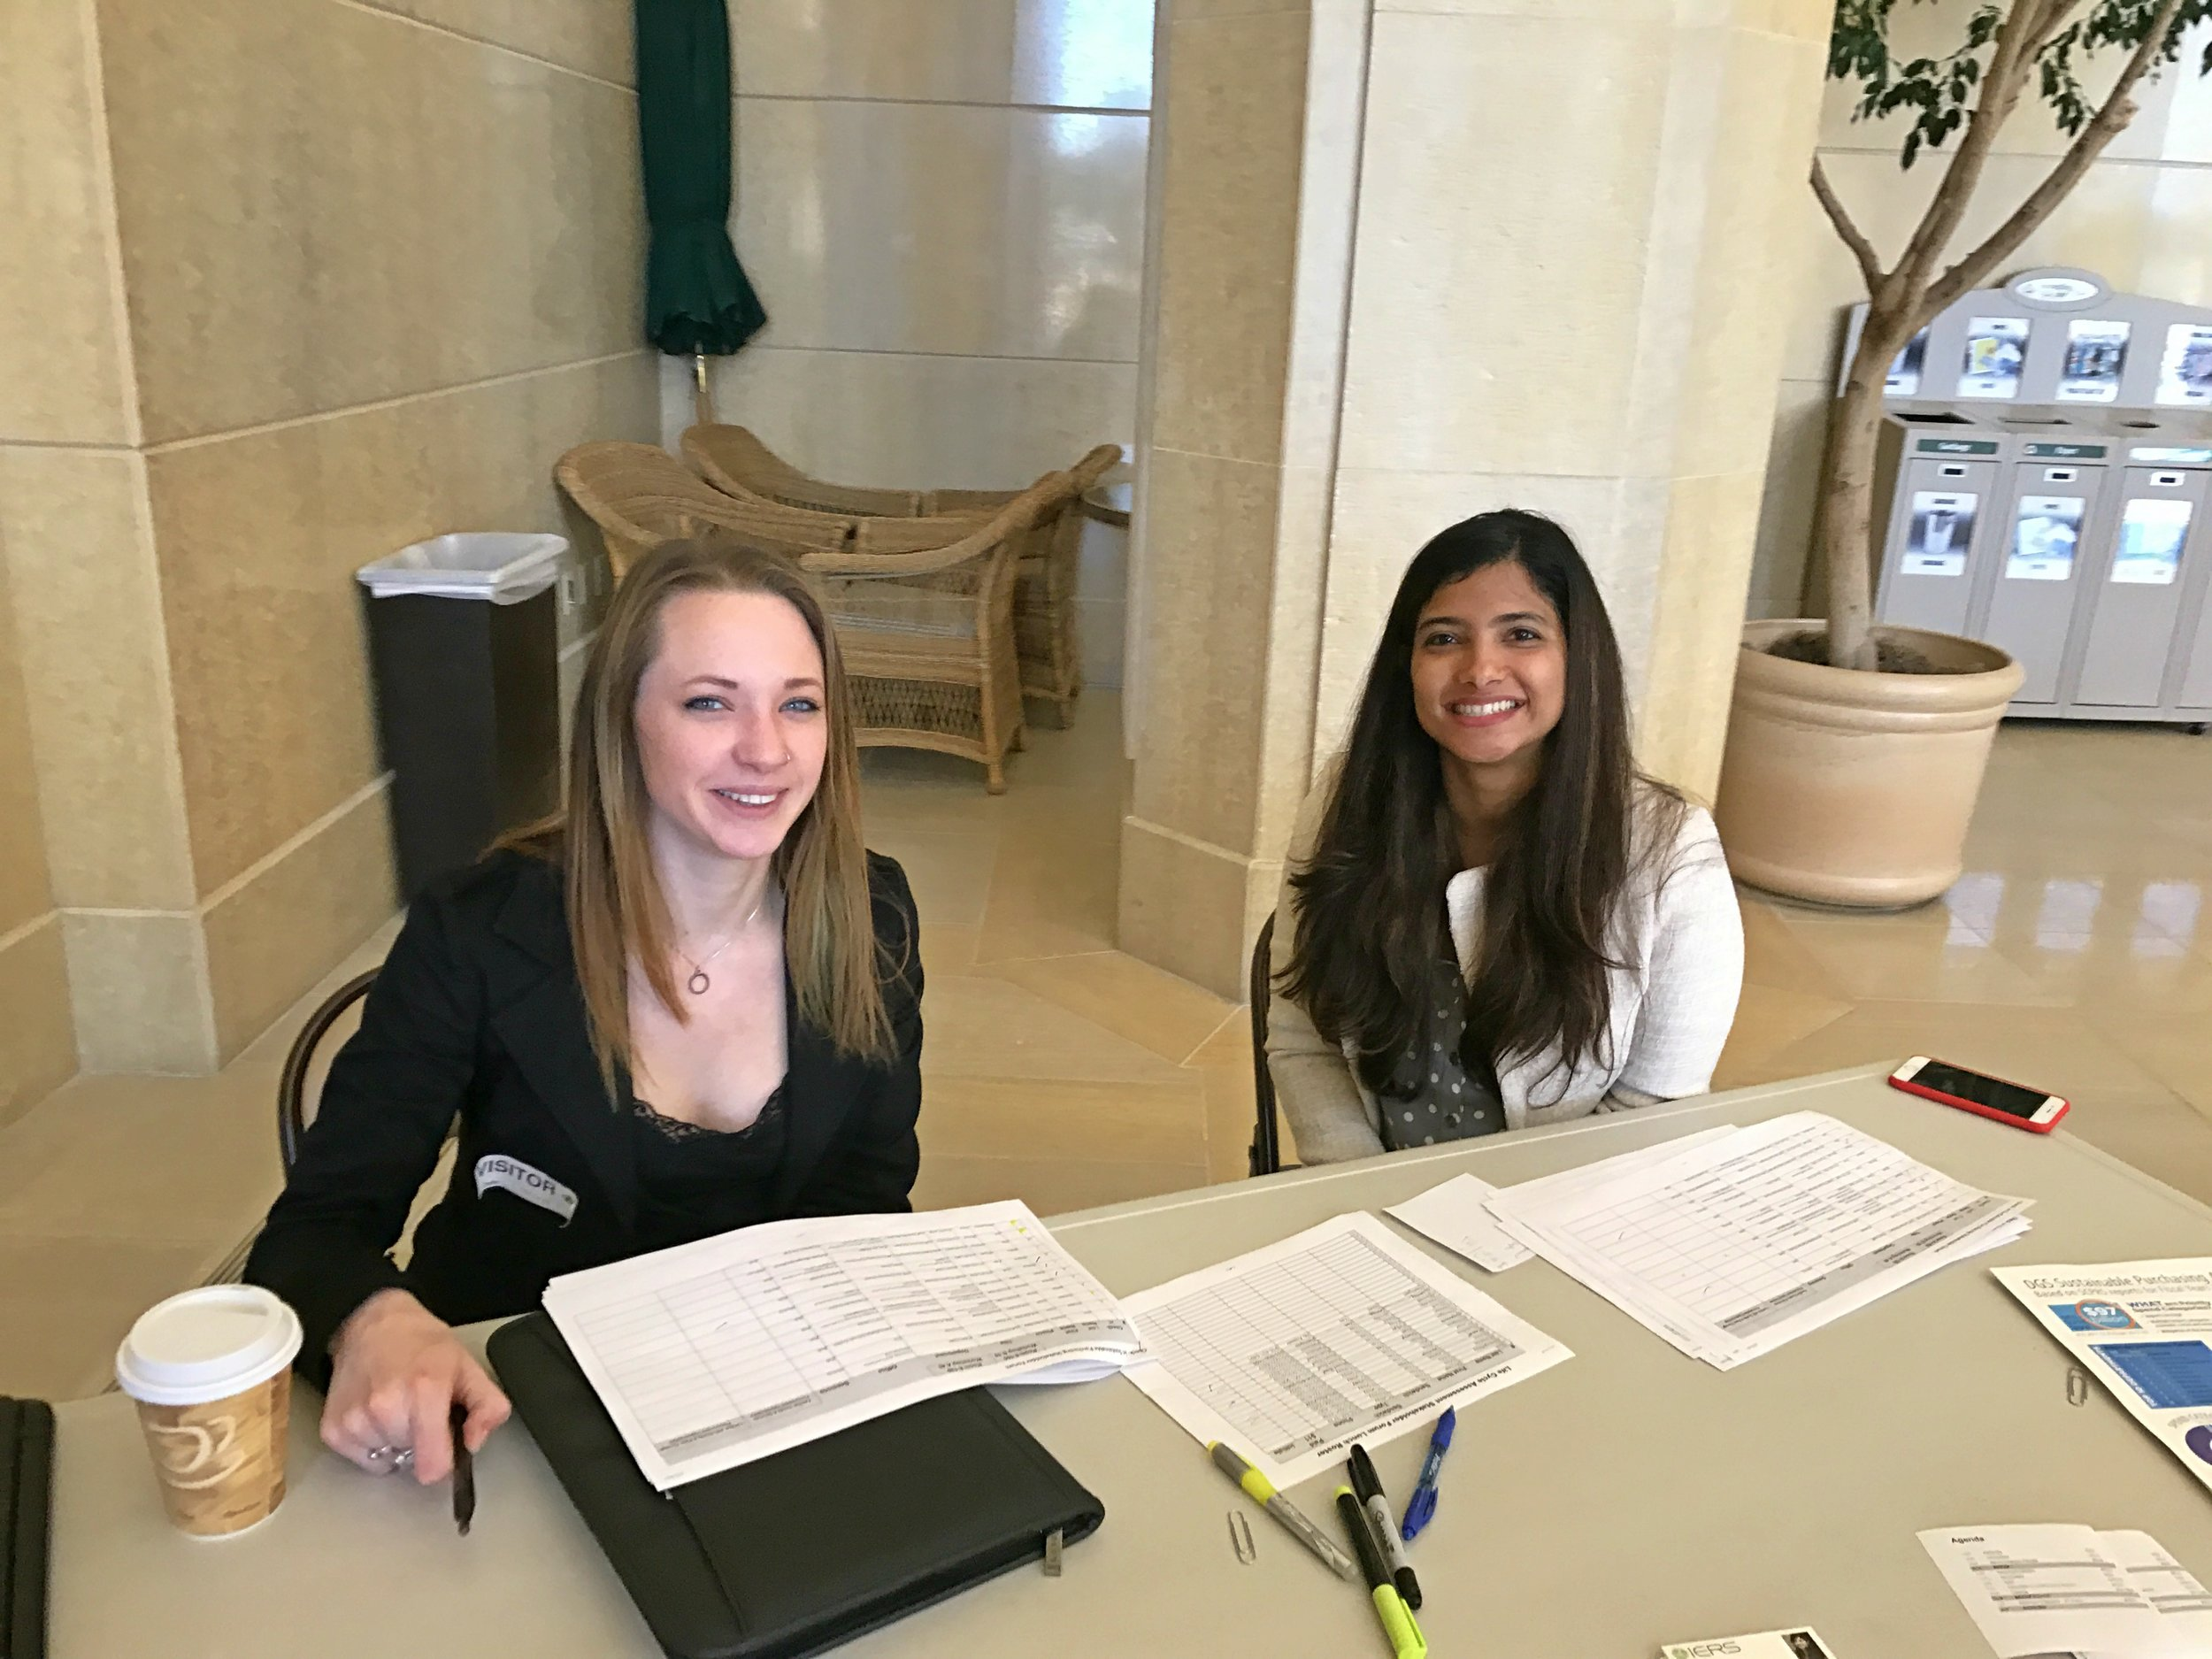 Shivira T. Choudhary and Summer Broeckx-Smith from IERS welcome attendees at check-in